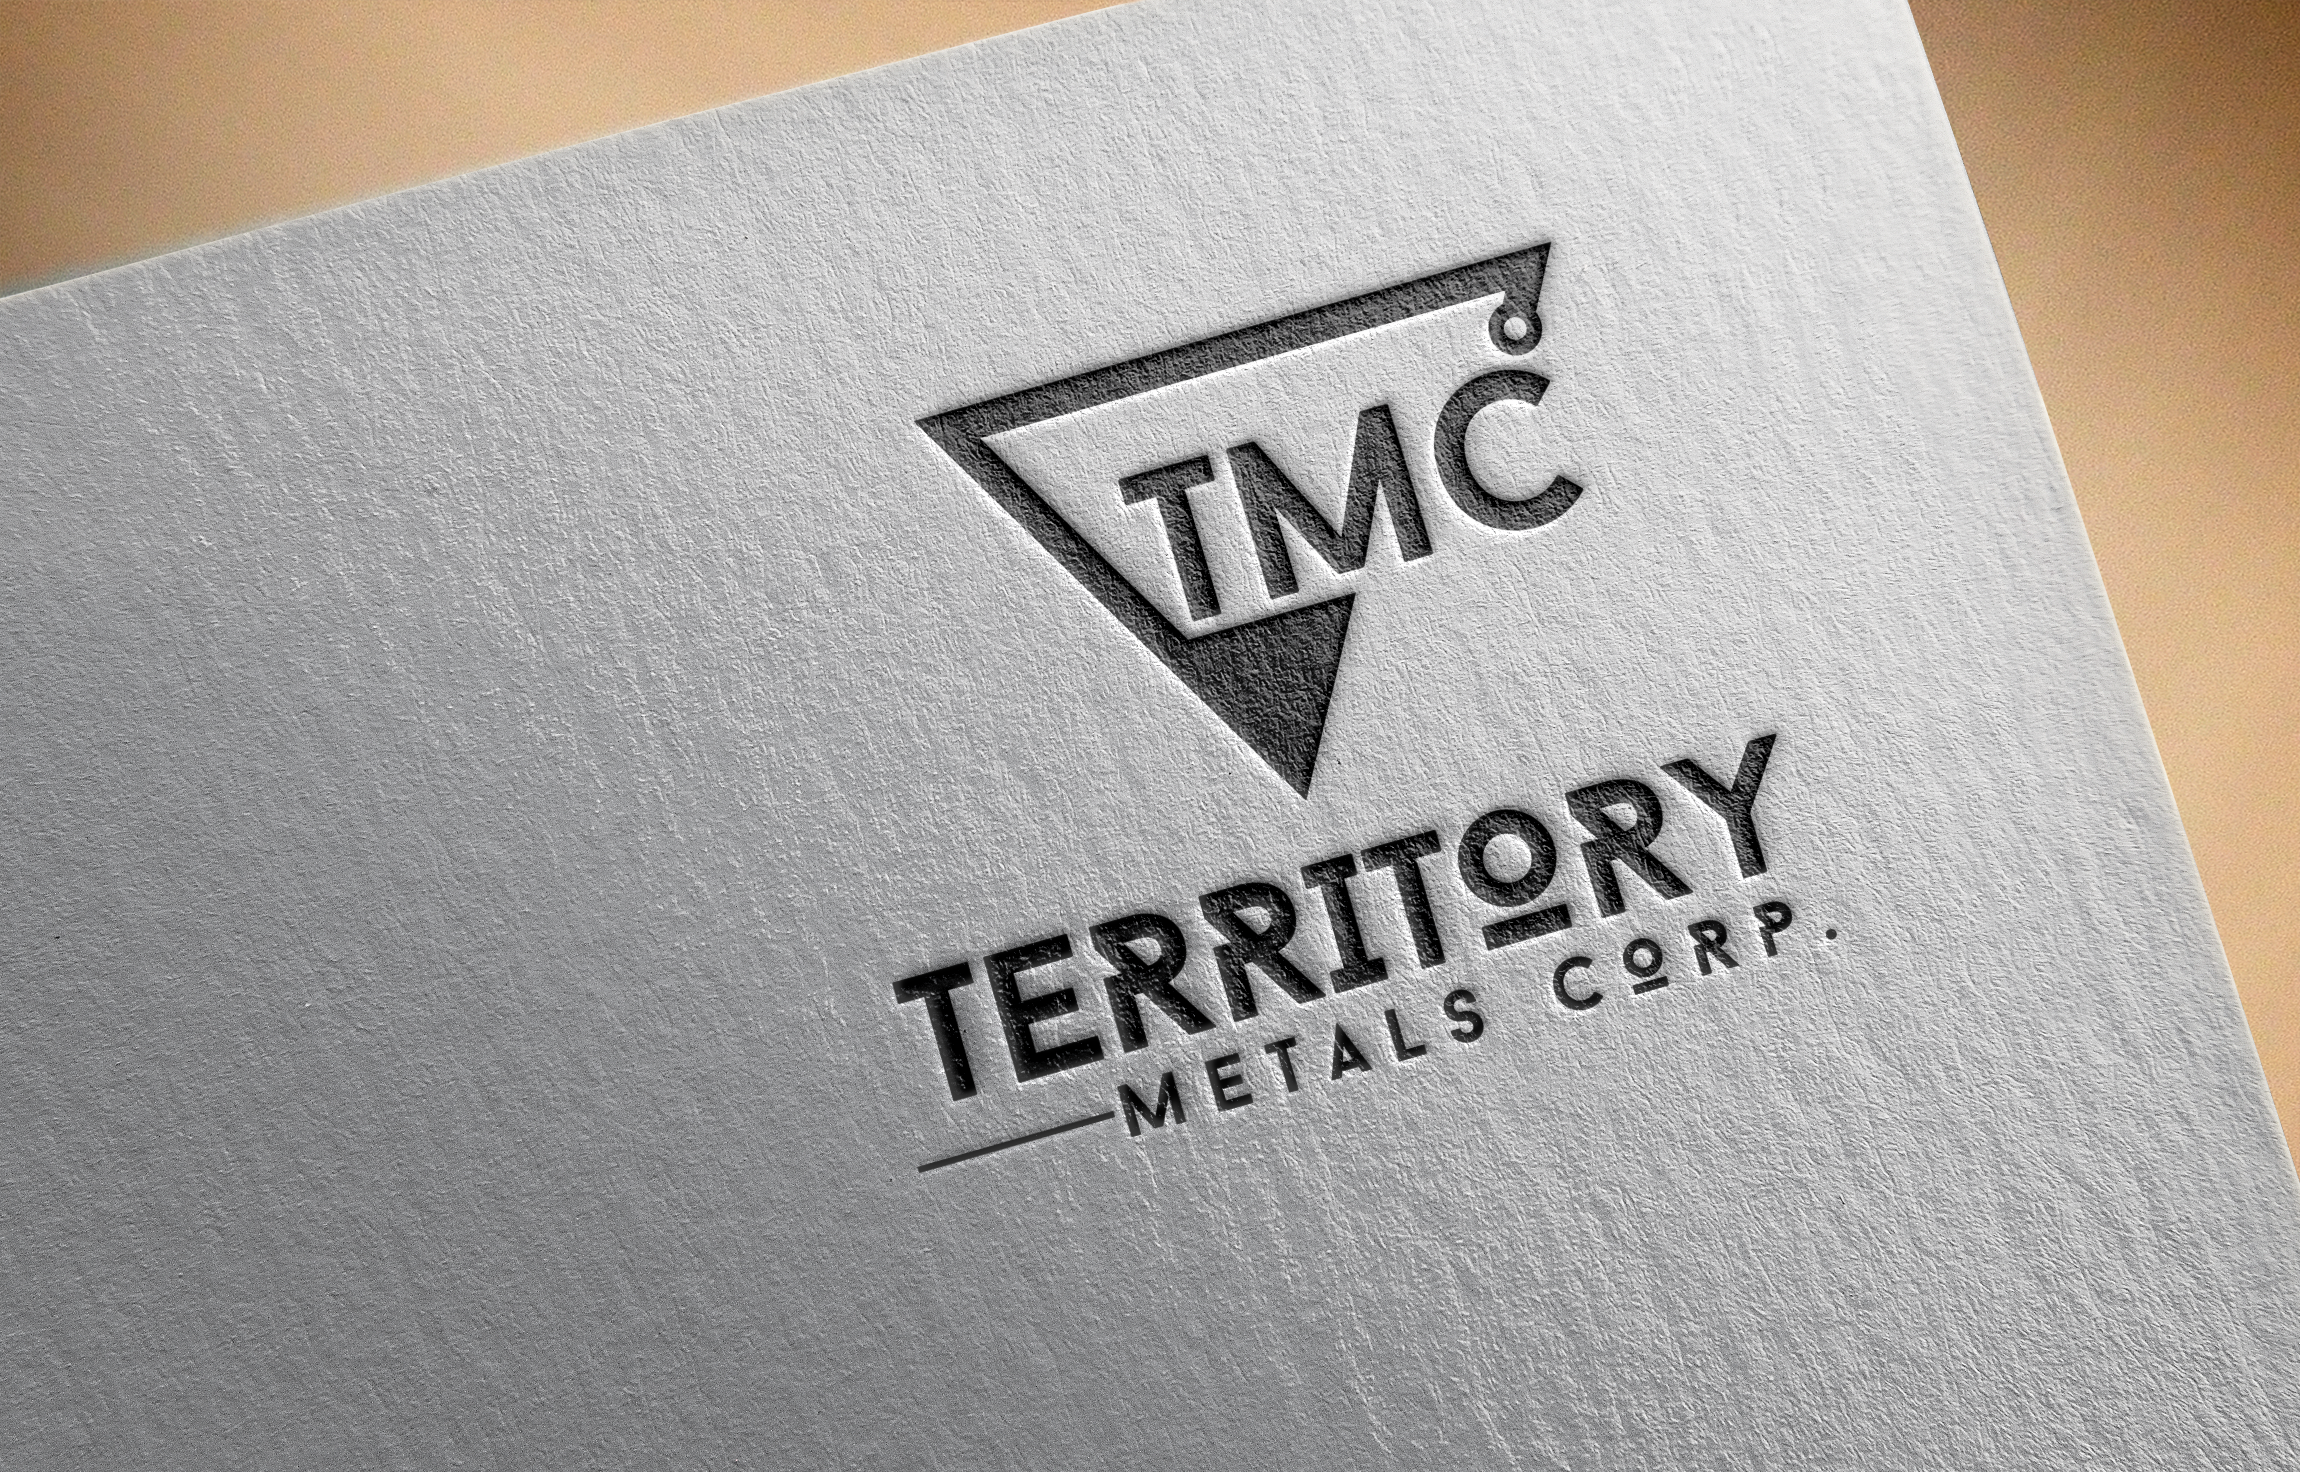 Logo Design by Prohor Ghagra - Entry No. 106 in the Logo Design Contest Unique Logo Design Wanted for Territory Metals Corp..